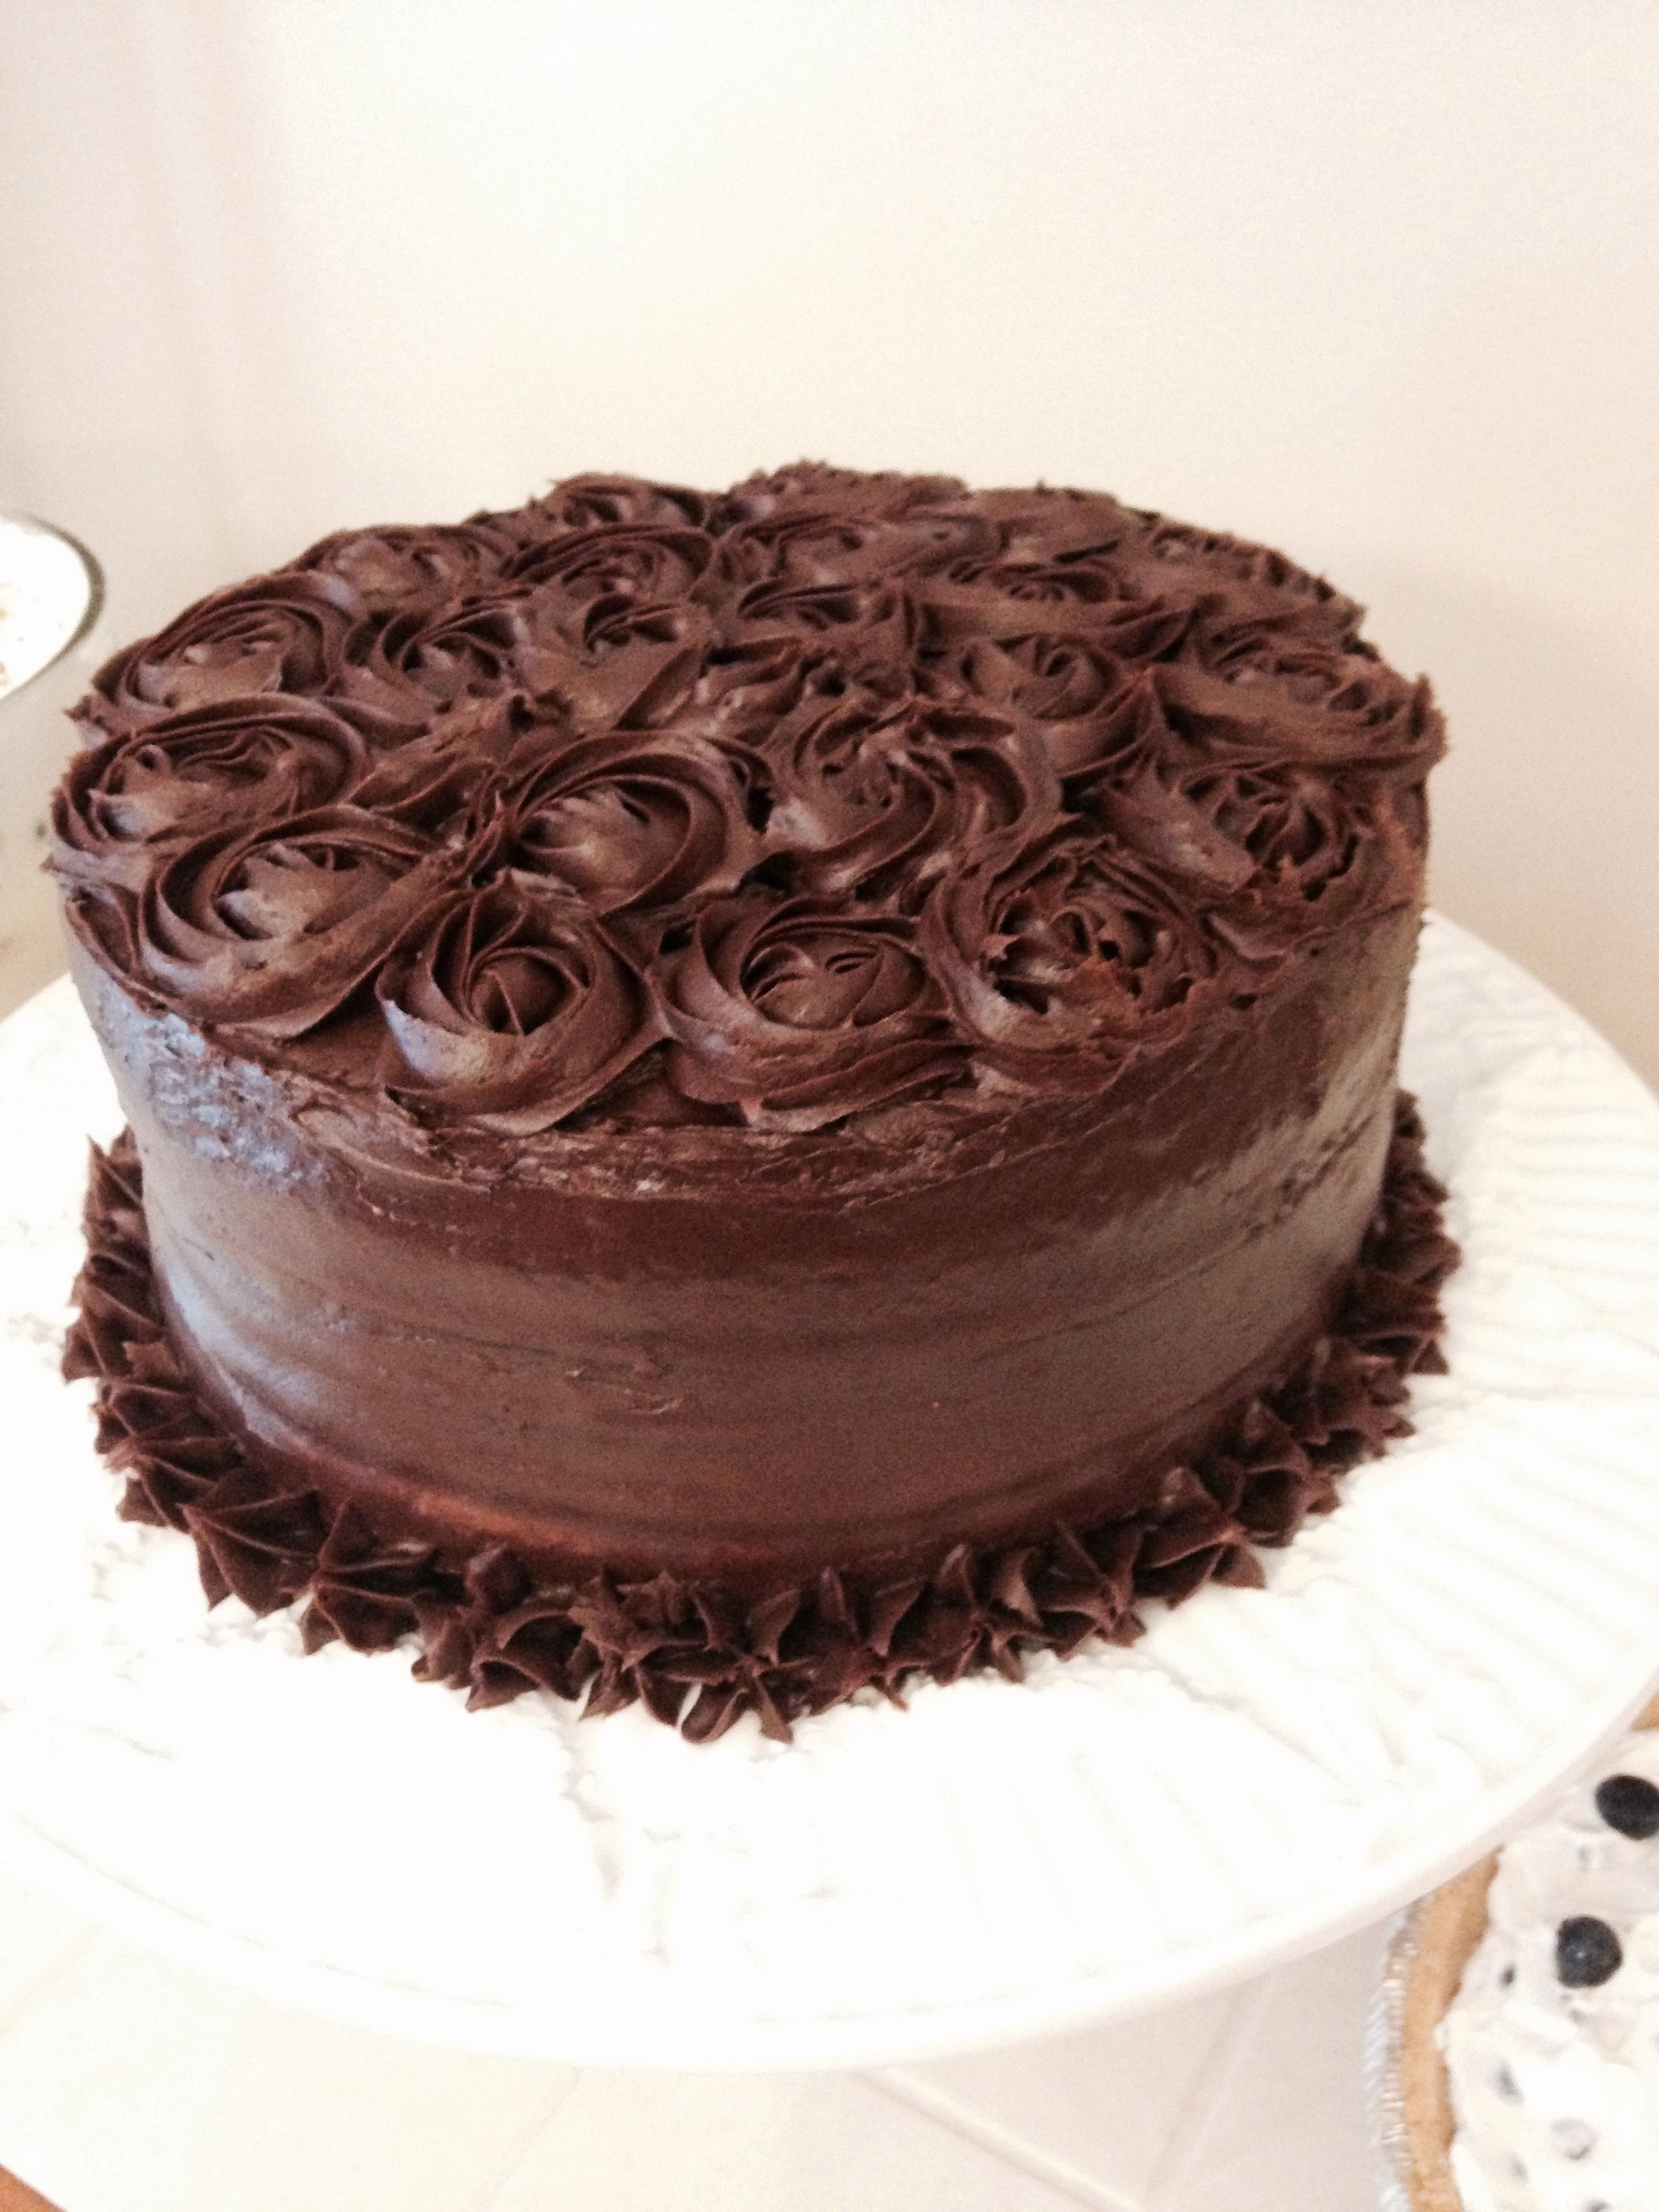 Chocolate On Rosette Cake Frosting Decoration Chocochips Sully Dress White Let Them Eat Icing